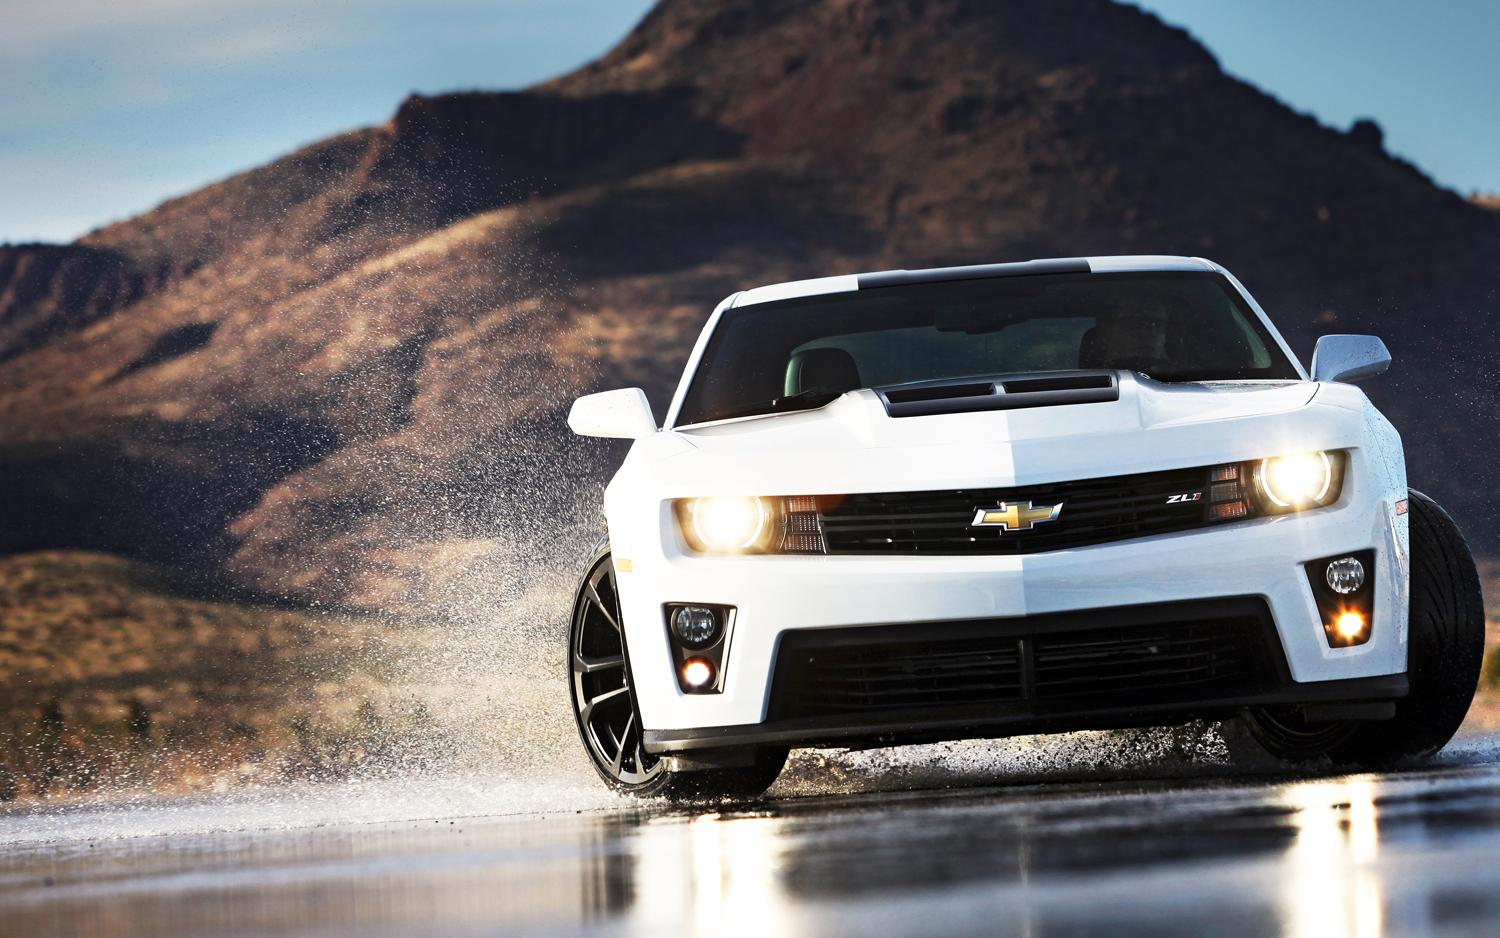 Camaro Zl1 Wallpaper2014 Camaro Zl1 White Hd Wallpapers Download 1500x938